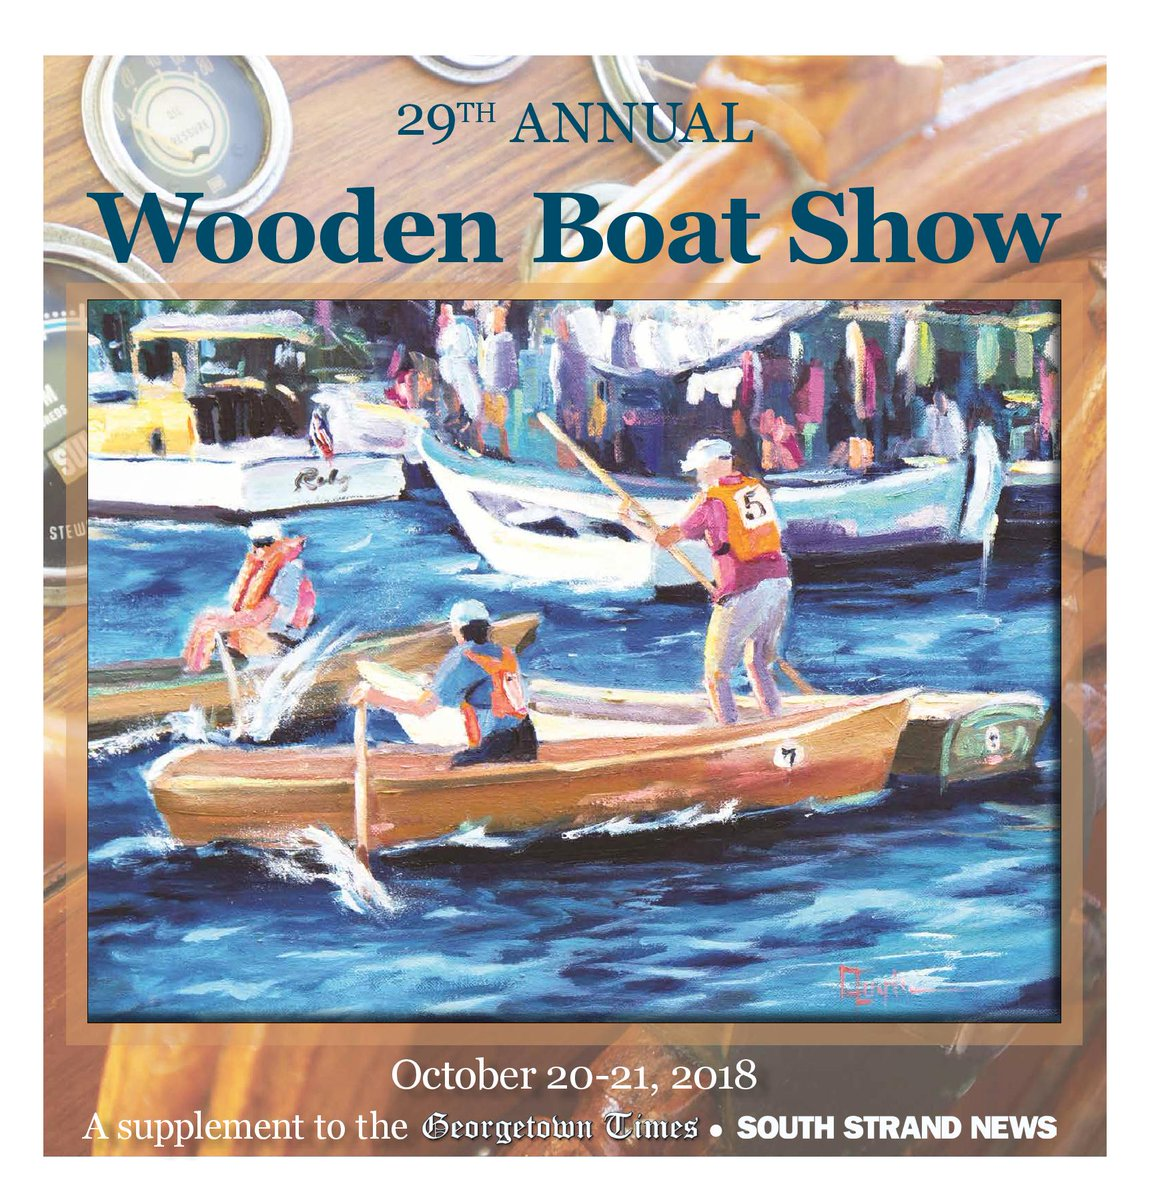 South Strand News On Twitter The Annual Georgetown Wooden Boat